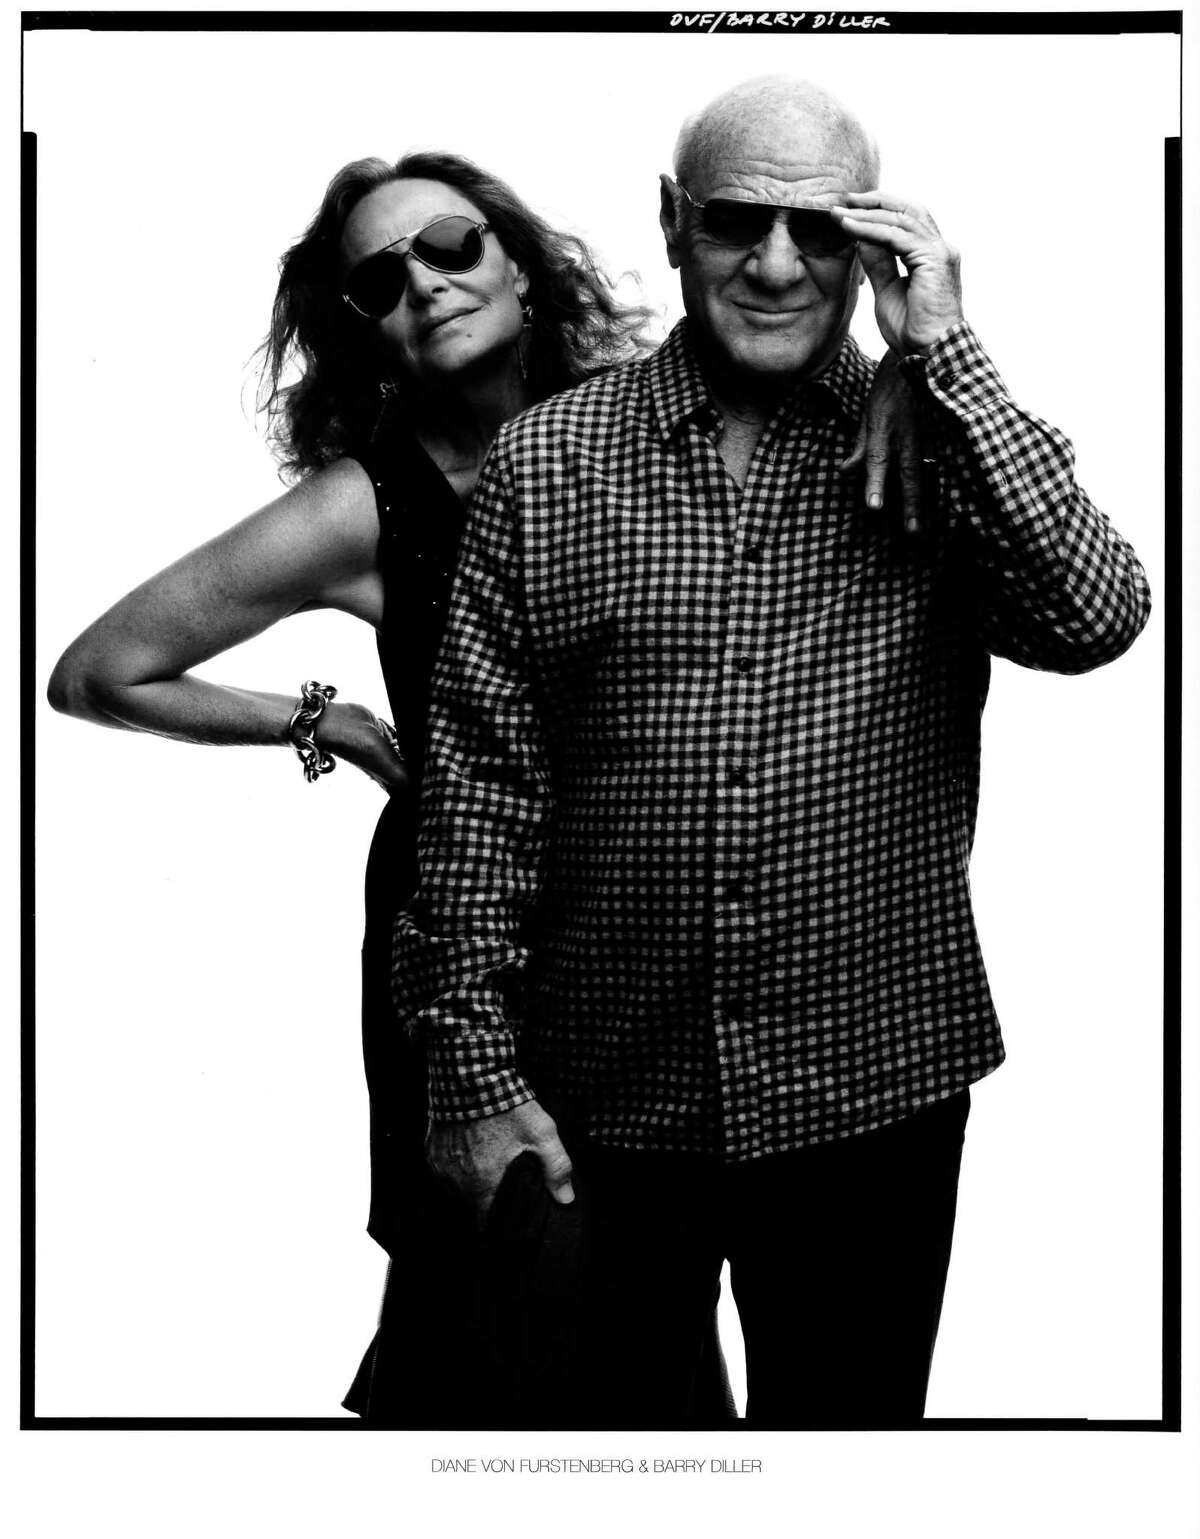 Fashion designer Diane von Furstenberg, famed for creating the wrap dress in the 1970s and a vibrant force in the fashion industry, with her second husband, movie industry executive Barry Diller.